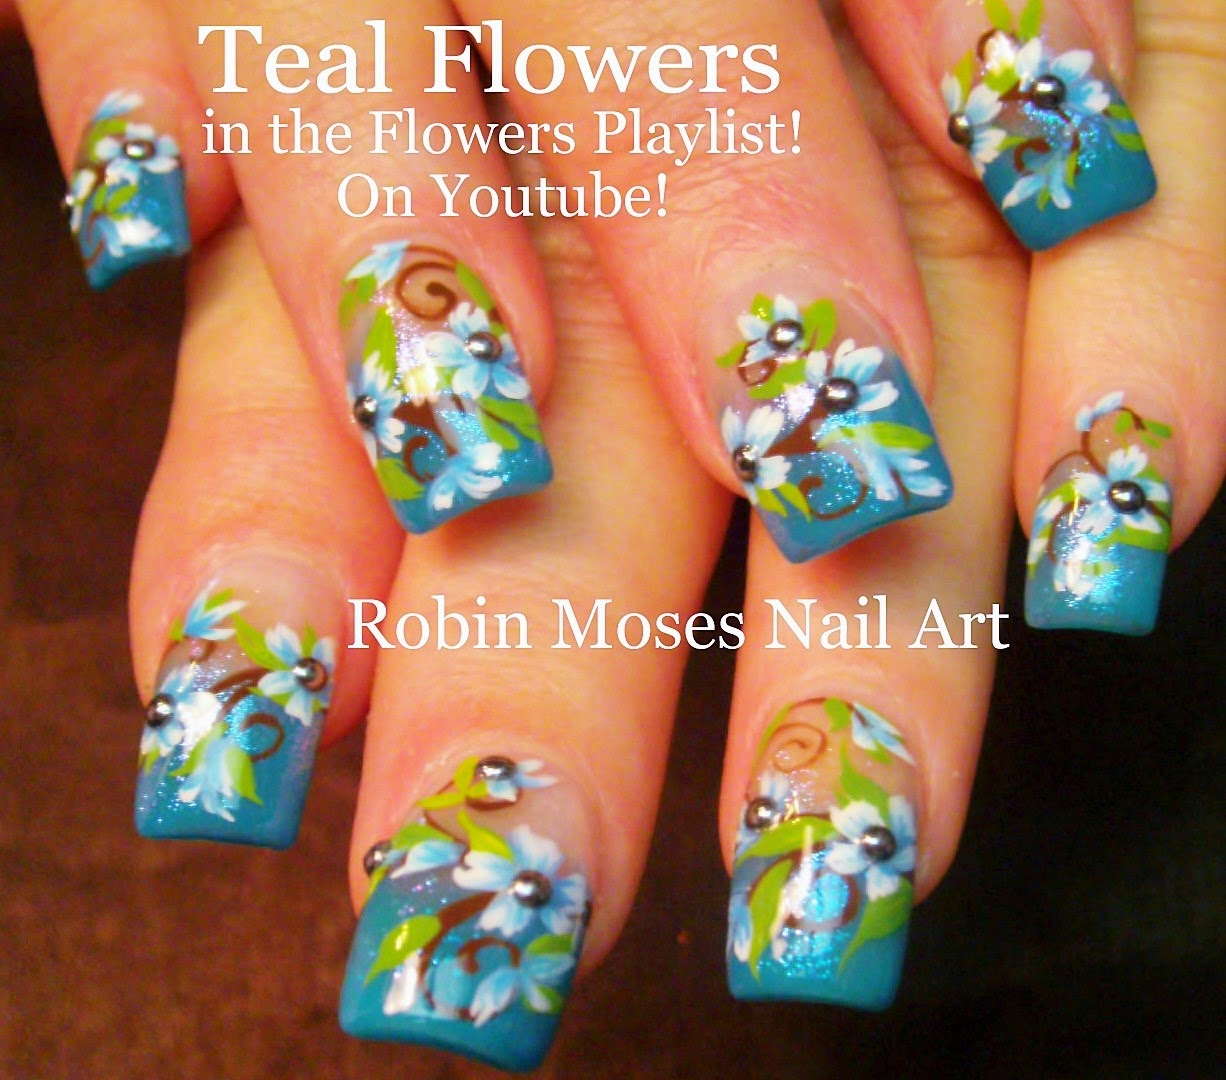 Robin Moses Nail Art Designs: Robin Moses Nail Art: February 2015